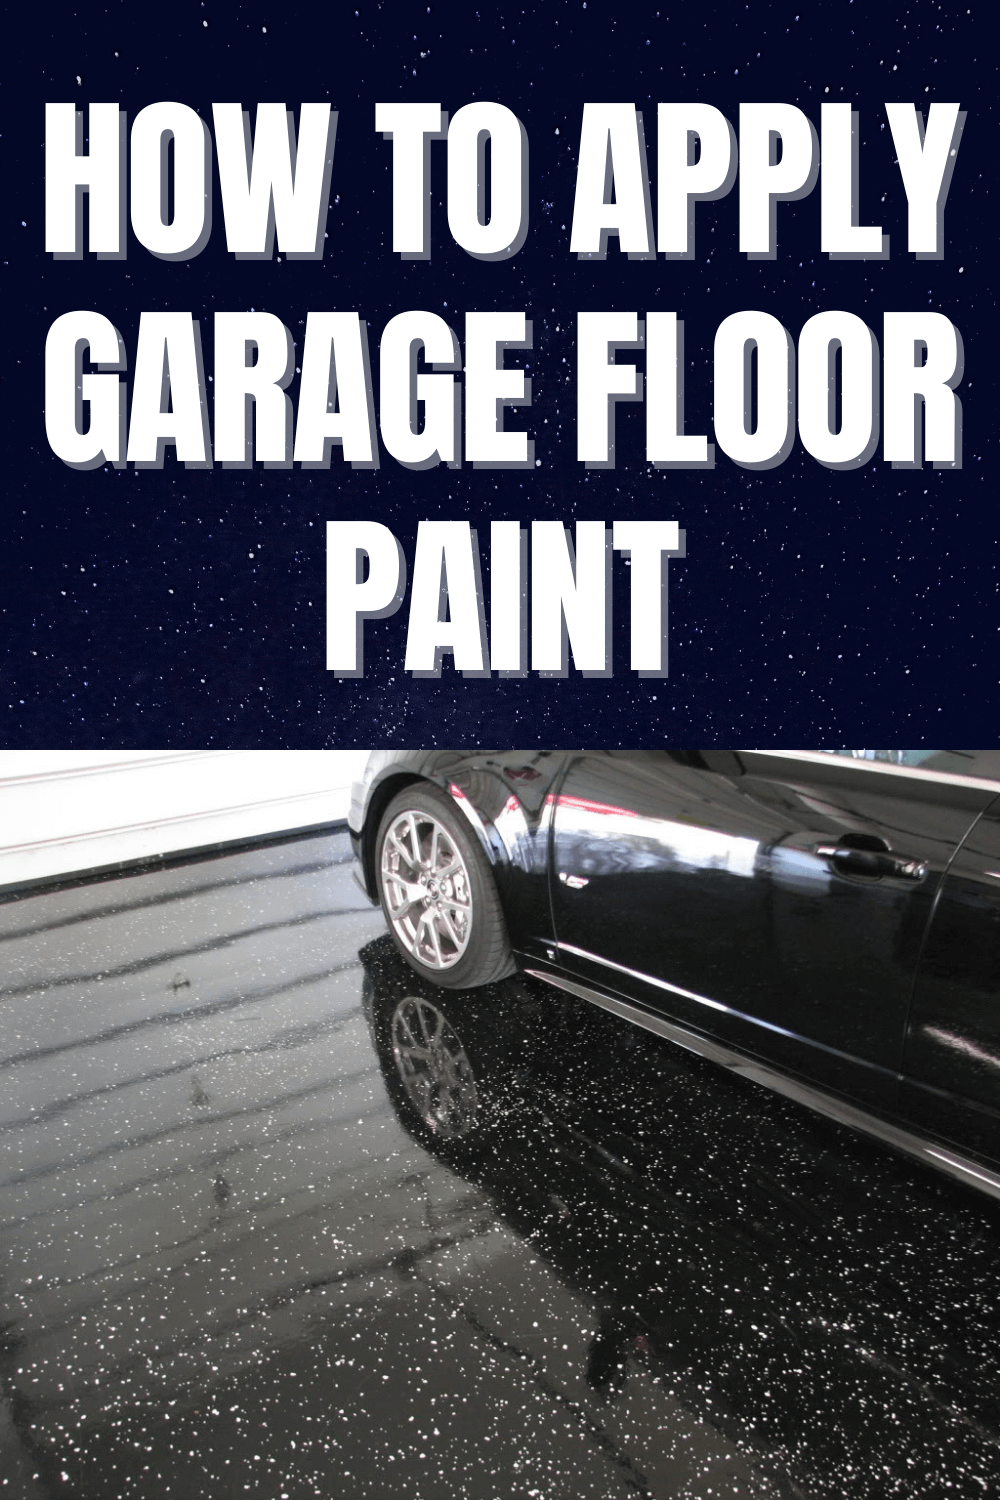 HOW TO APPLY GARAGE FLOOR PAINT